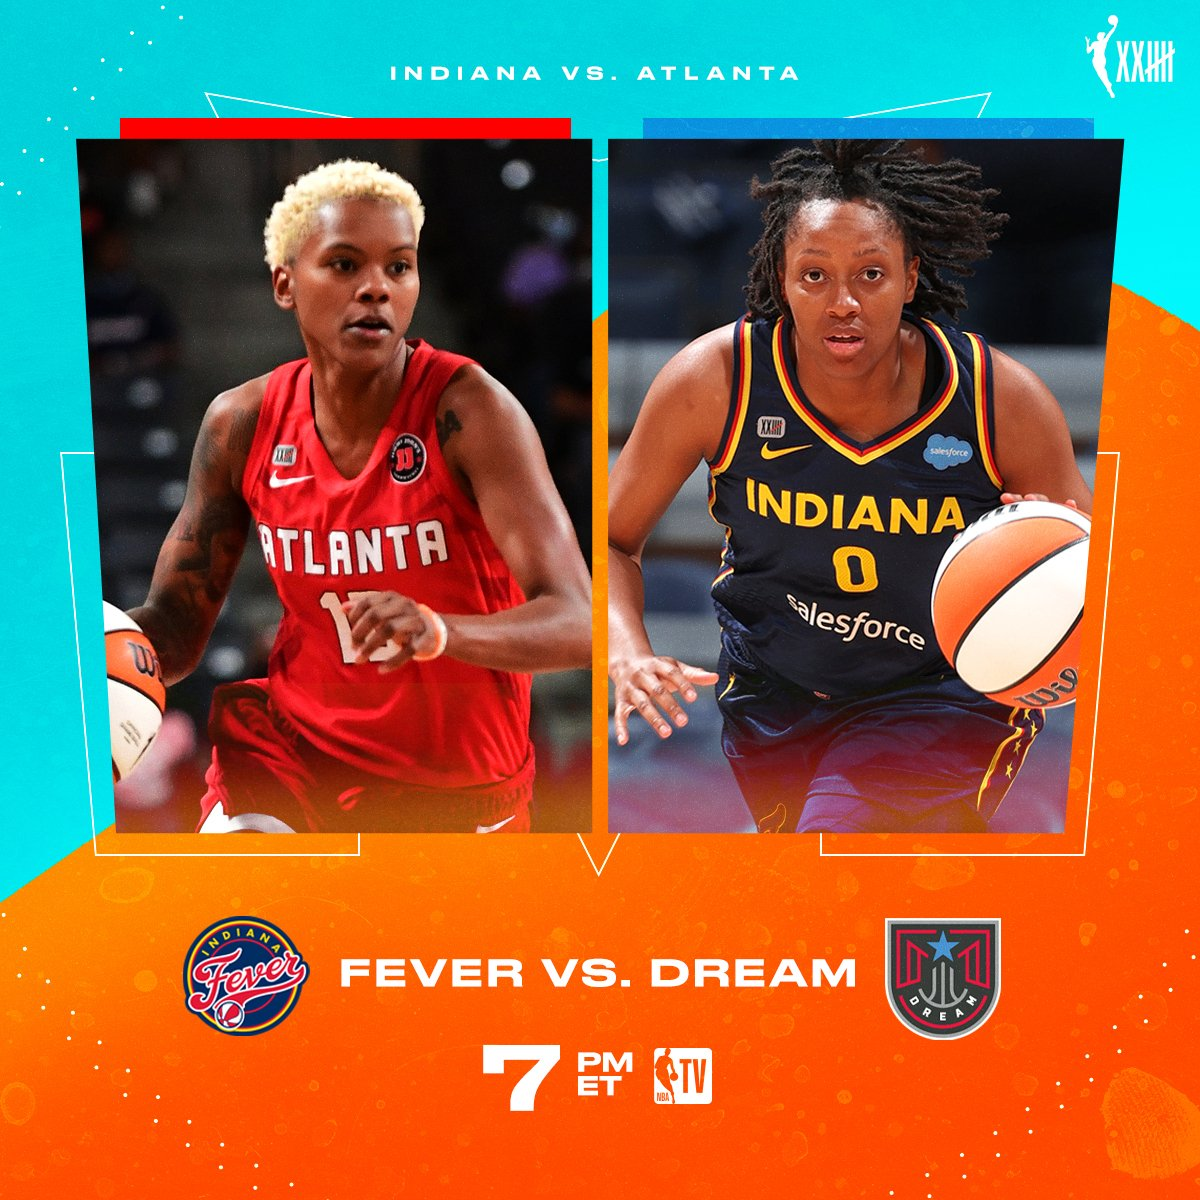 The @AtlantaDream and @IndianaFever look to finish out the season strong 💪 📺 Dream vs. Fever // 7pm ET on NBA TV!